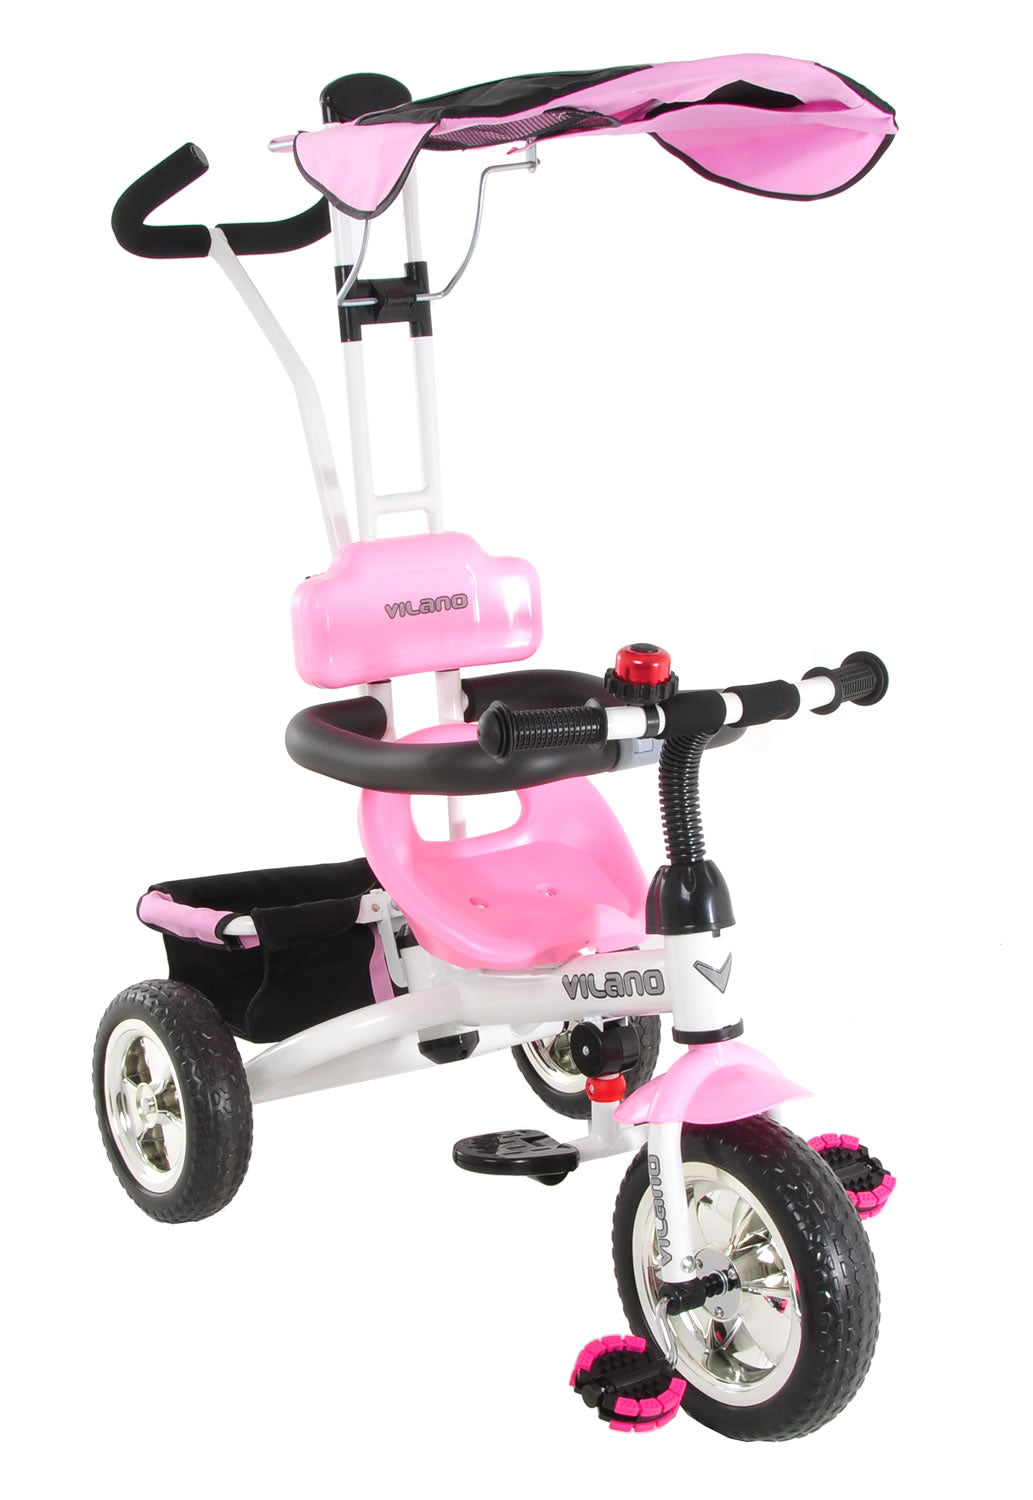 products/575-3IN1-TRIKE-PNK__01.jpg_16.jpg